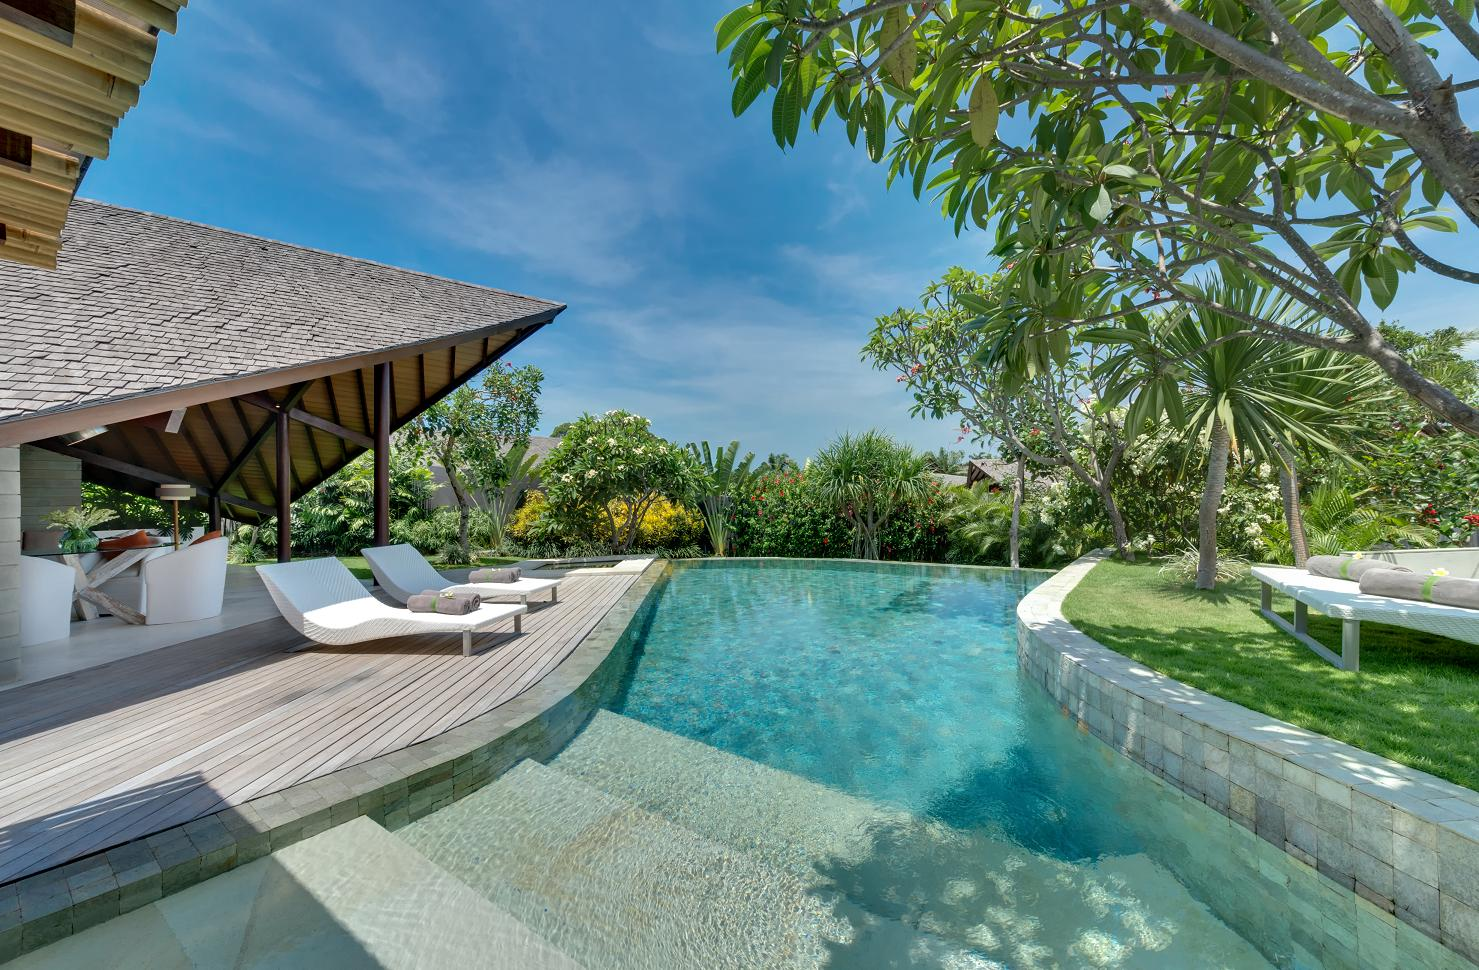 Luxury bali villas luxury villa holidays ultimate bali for Pool design bali